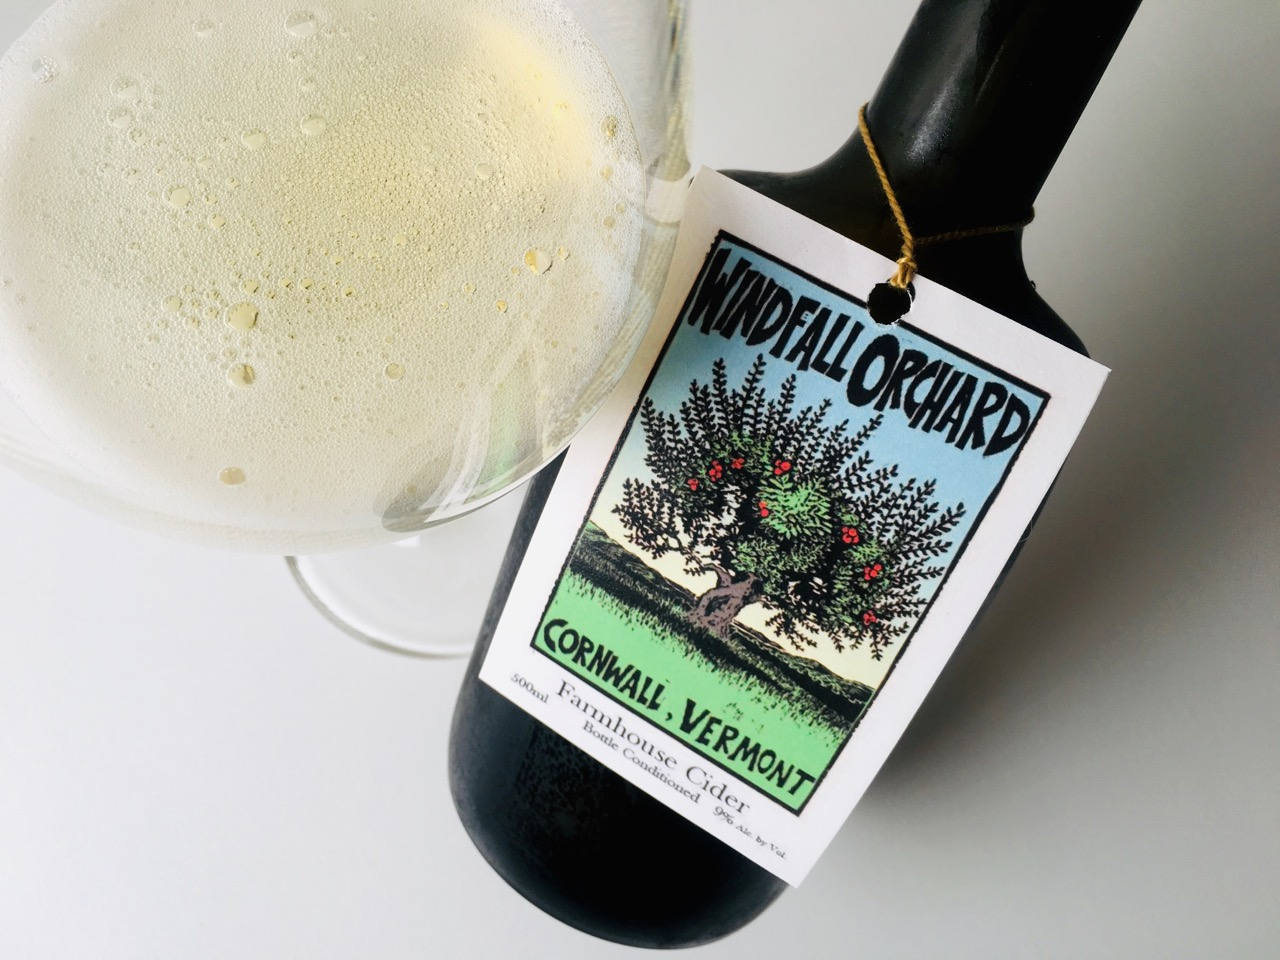 Windfall Orchard Farmhouse Cider